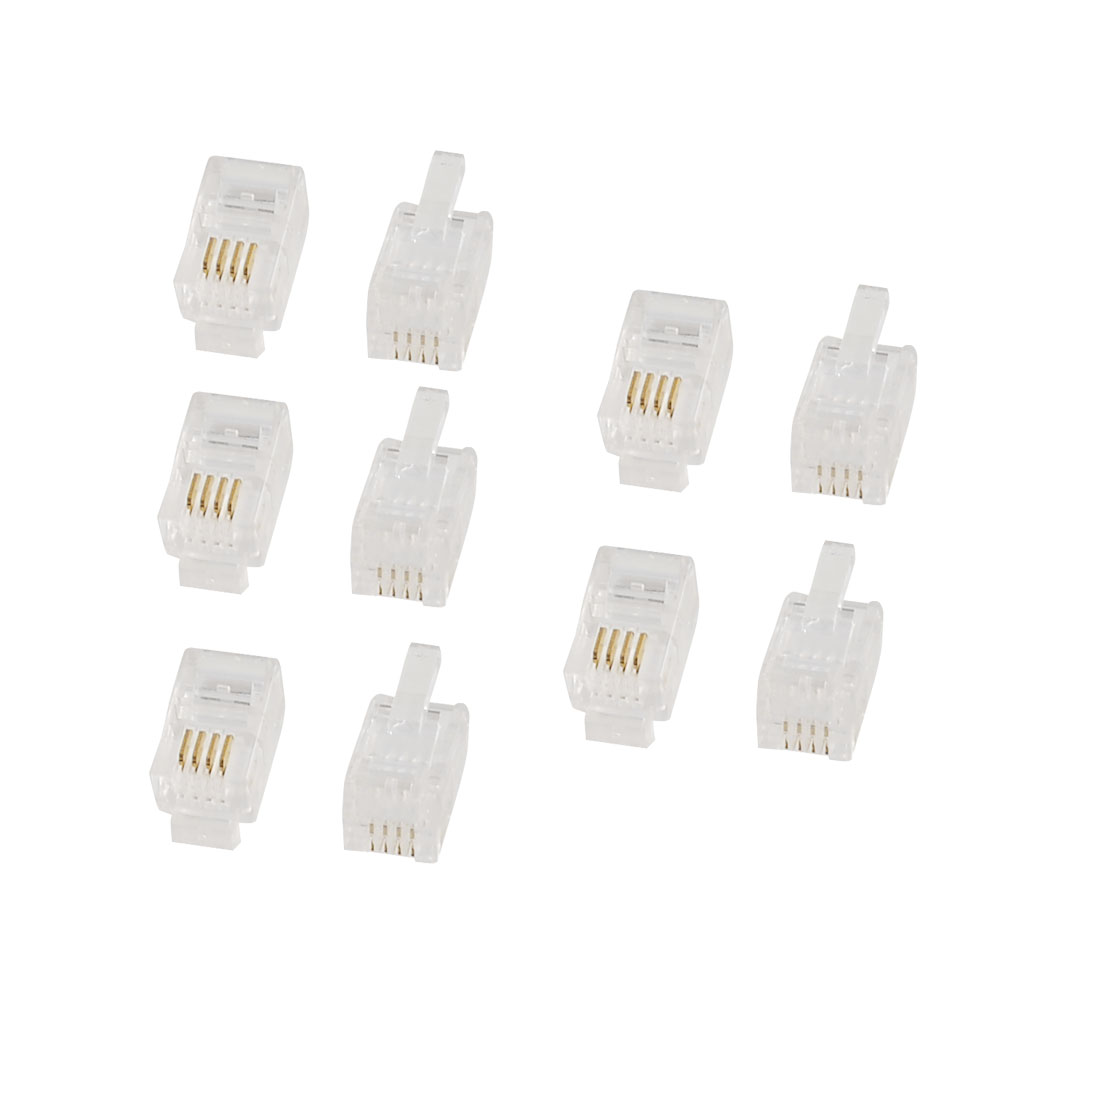 10 Pcs 4P4C RJ11 Plug Jack Connector Clear for Telephone Cable